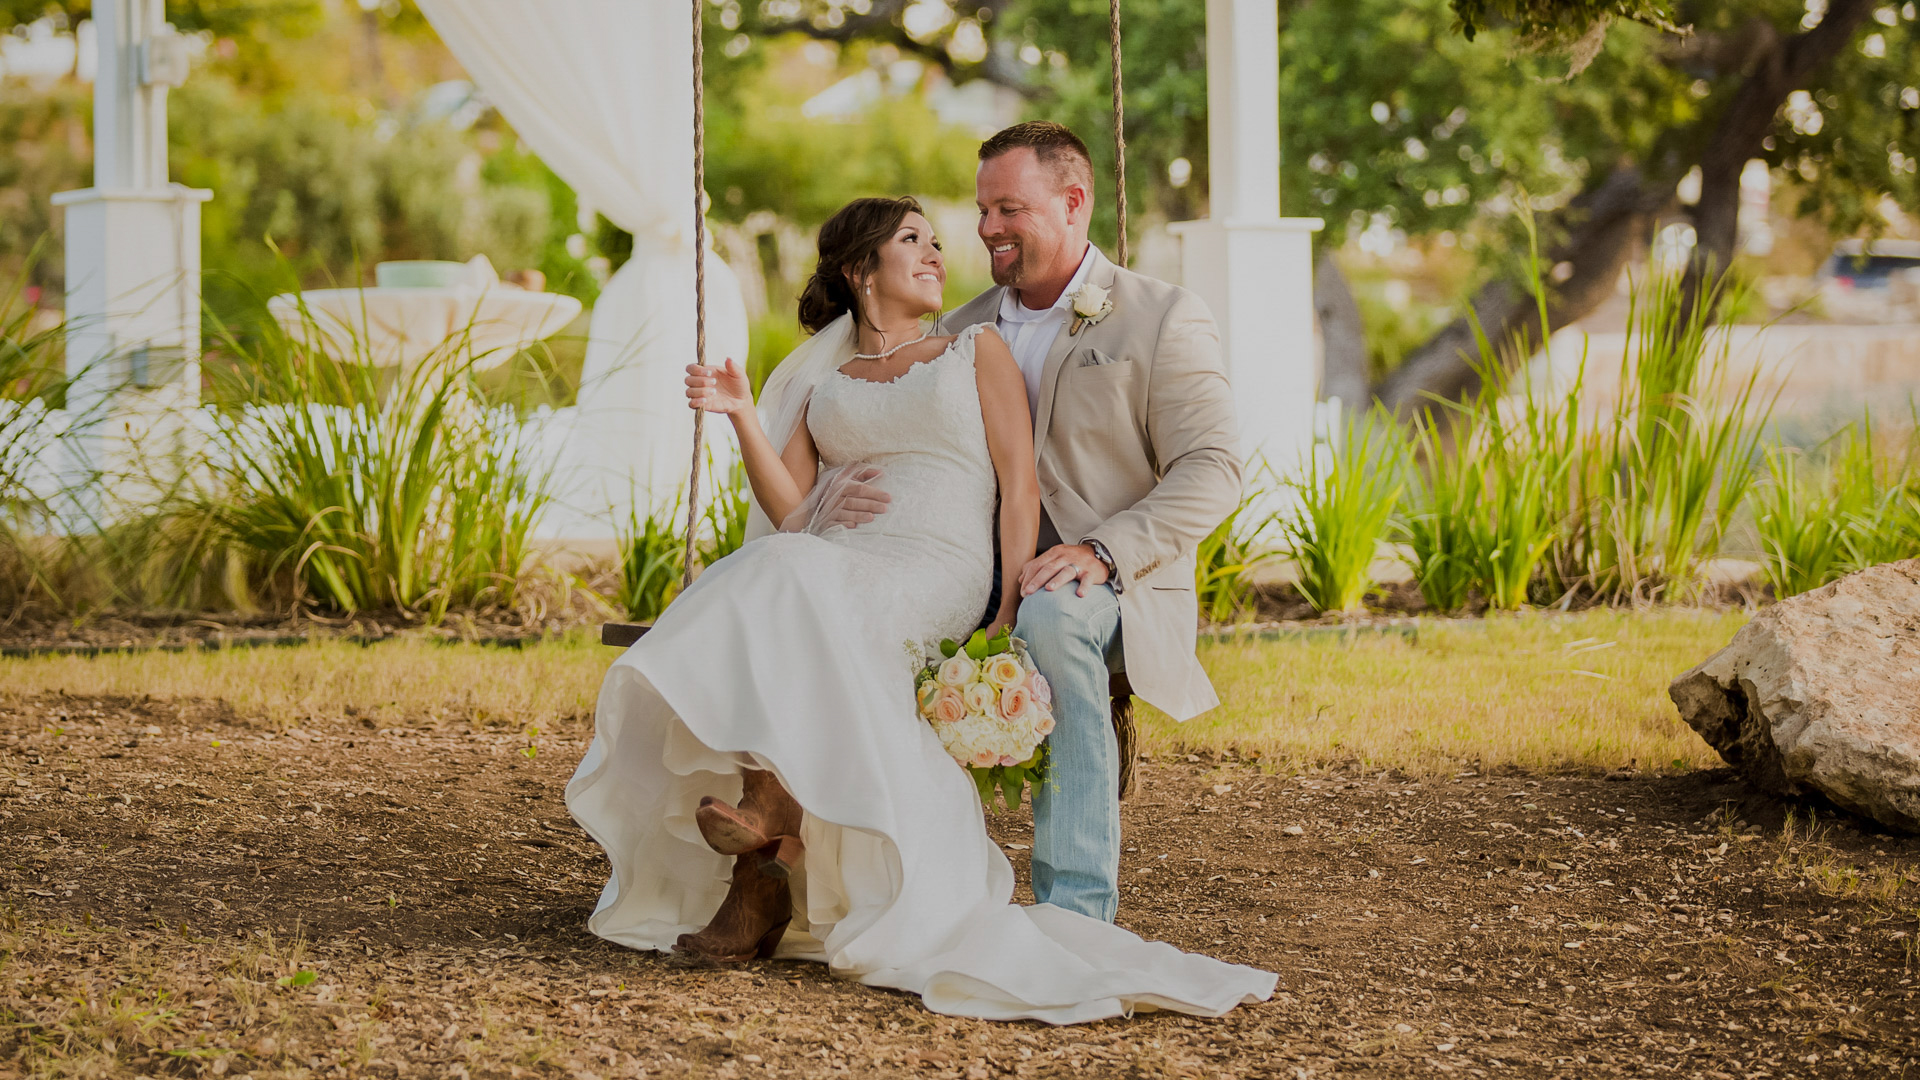 Check portfolios, pricing and availability for wedding photographers in San Antonio